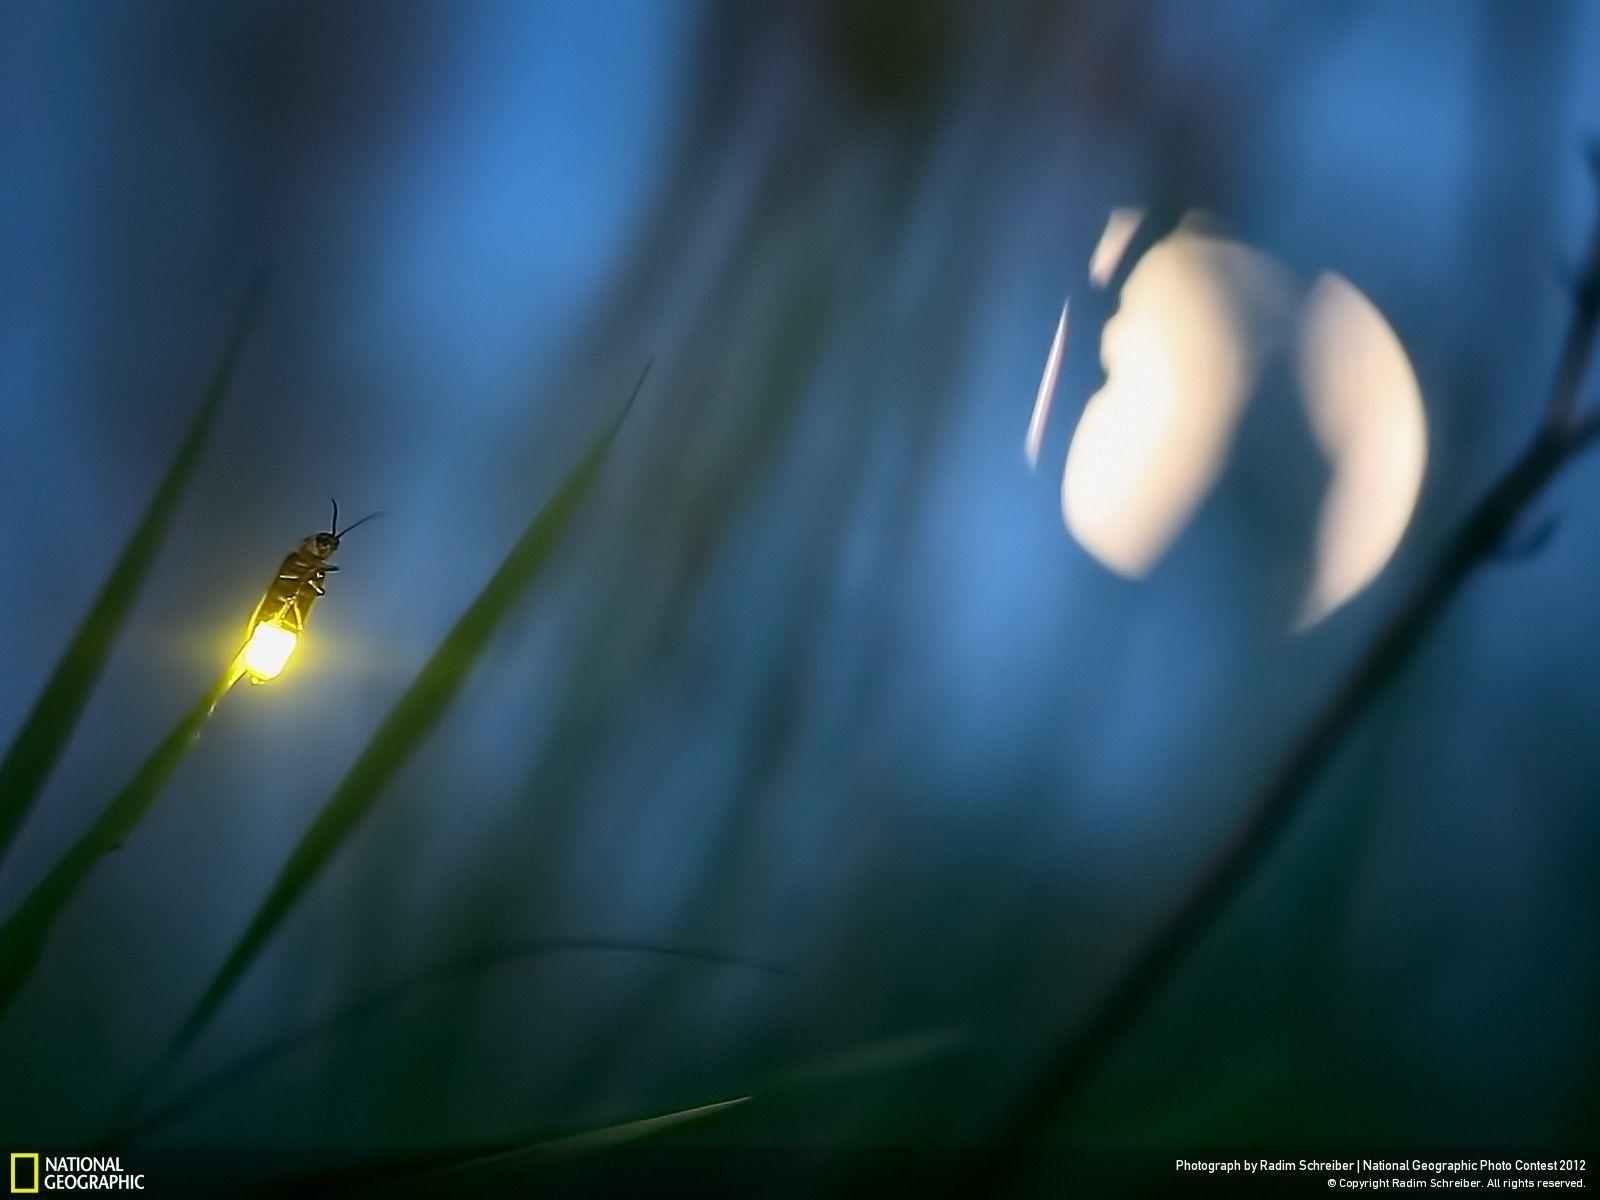 Firefly and Moon - National Geographic Photo Contest 2012 ...